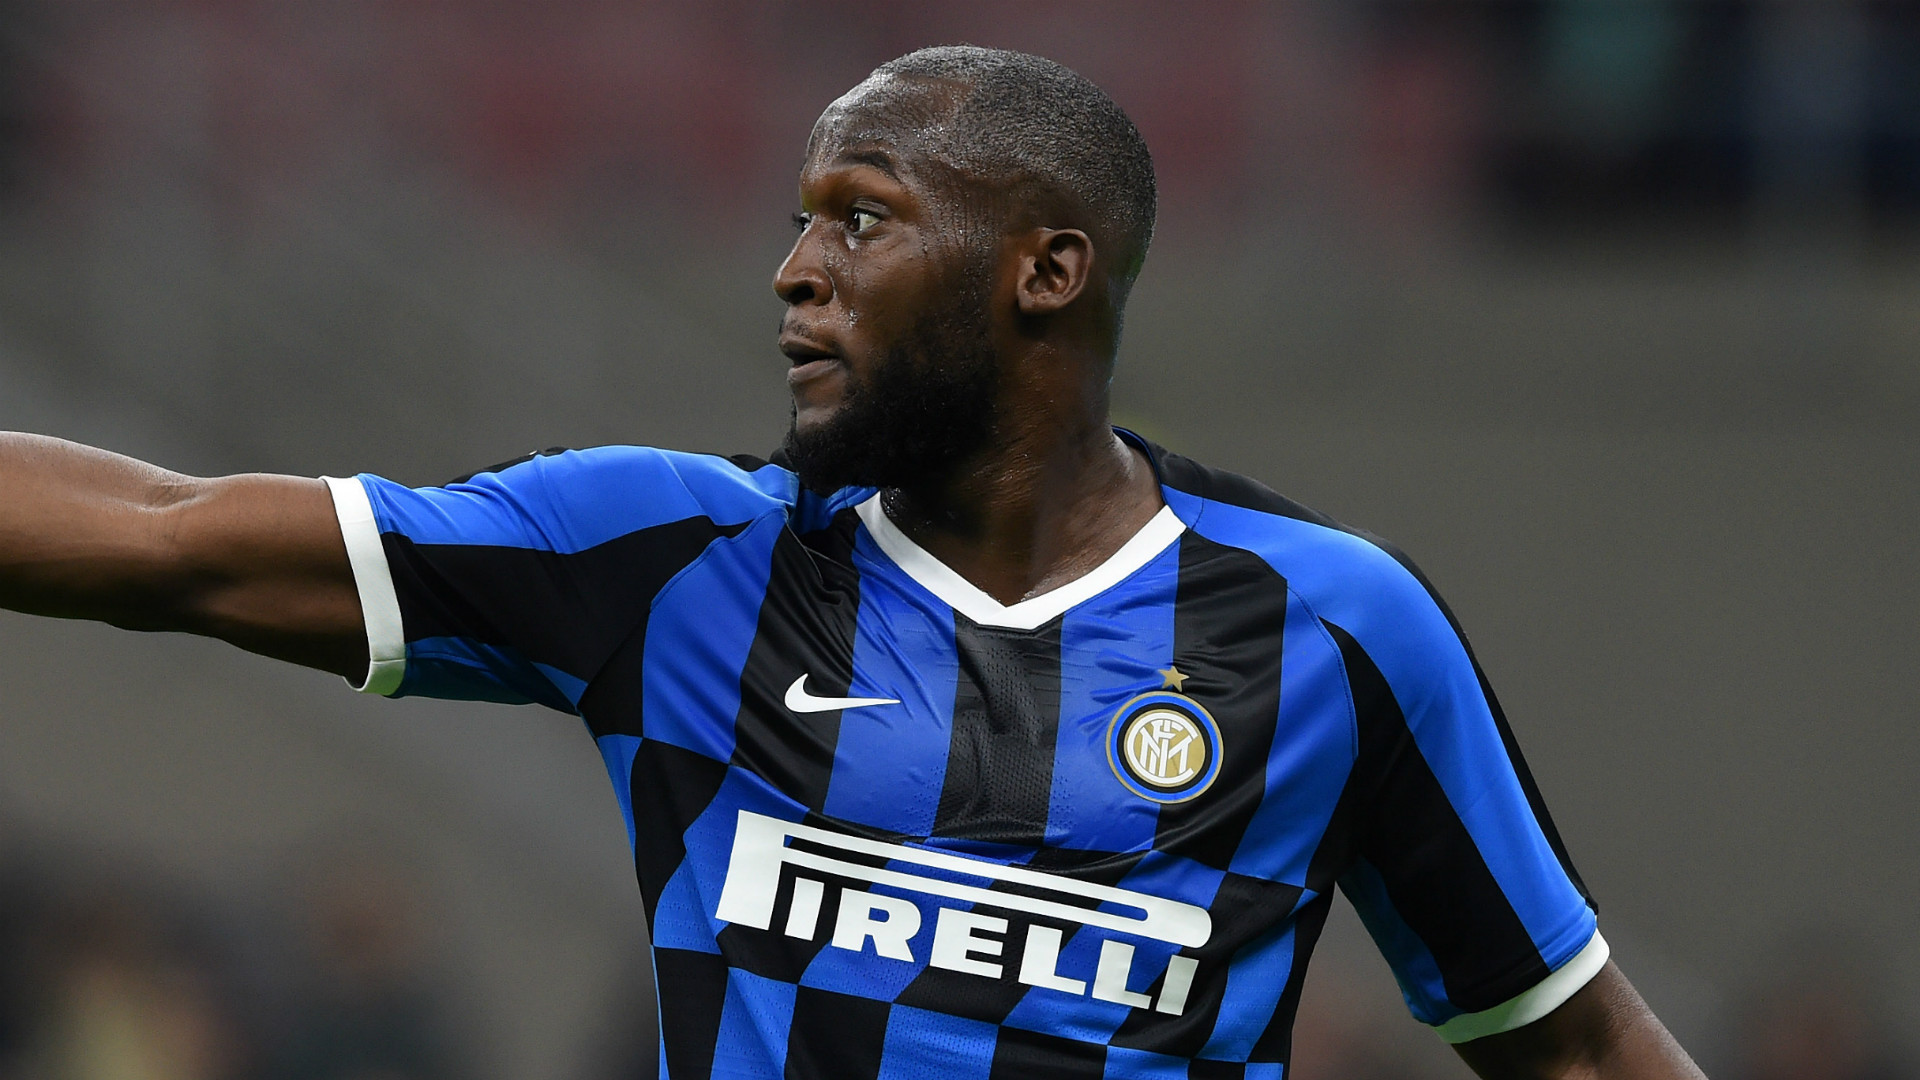 'Scoring goals is my drug' - Lukaku on life at Inter, his partnership with Lautaro & how he idolised Ronaldo